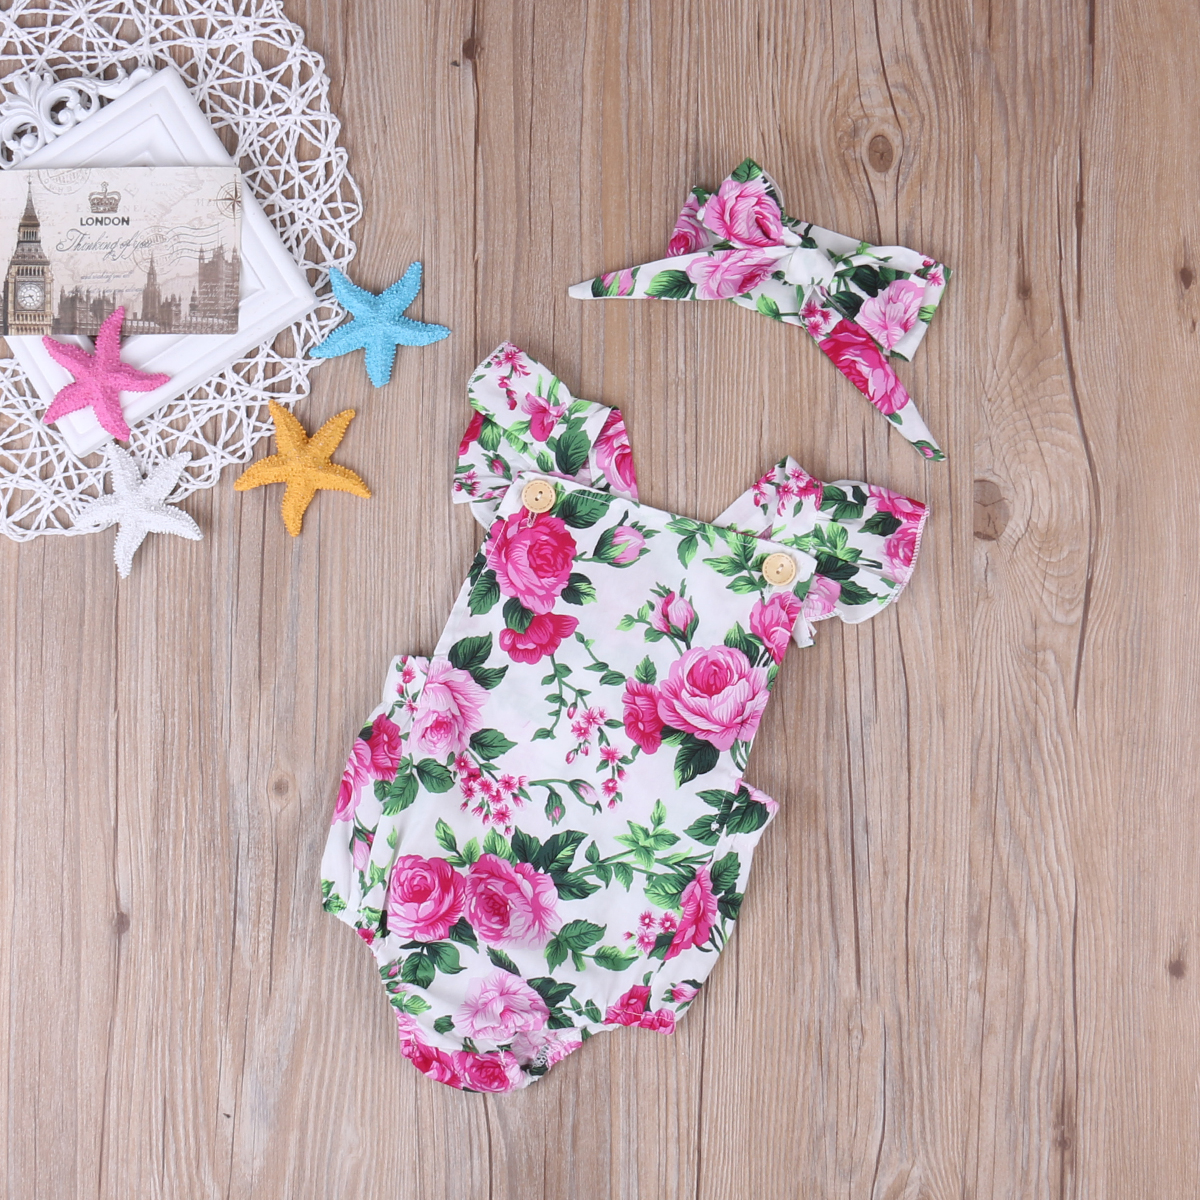 Baby Girl Spaghetti straps Halter Romper Headbamd Jumpsuit Floral Sunsuit Outfits 2 pieces Set for Christmas Baby Girl Spaghetti straps Halter Romper + Headbamd Jumpsuit Floral Sunsuit Outfits 2 pieces Set for Christmas